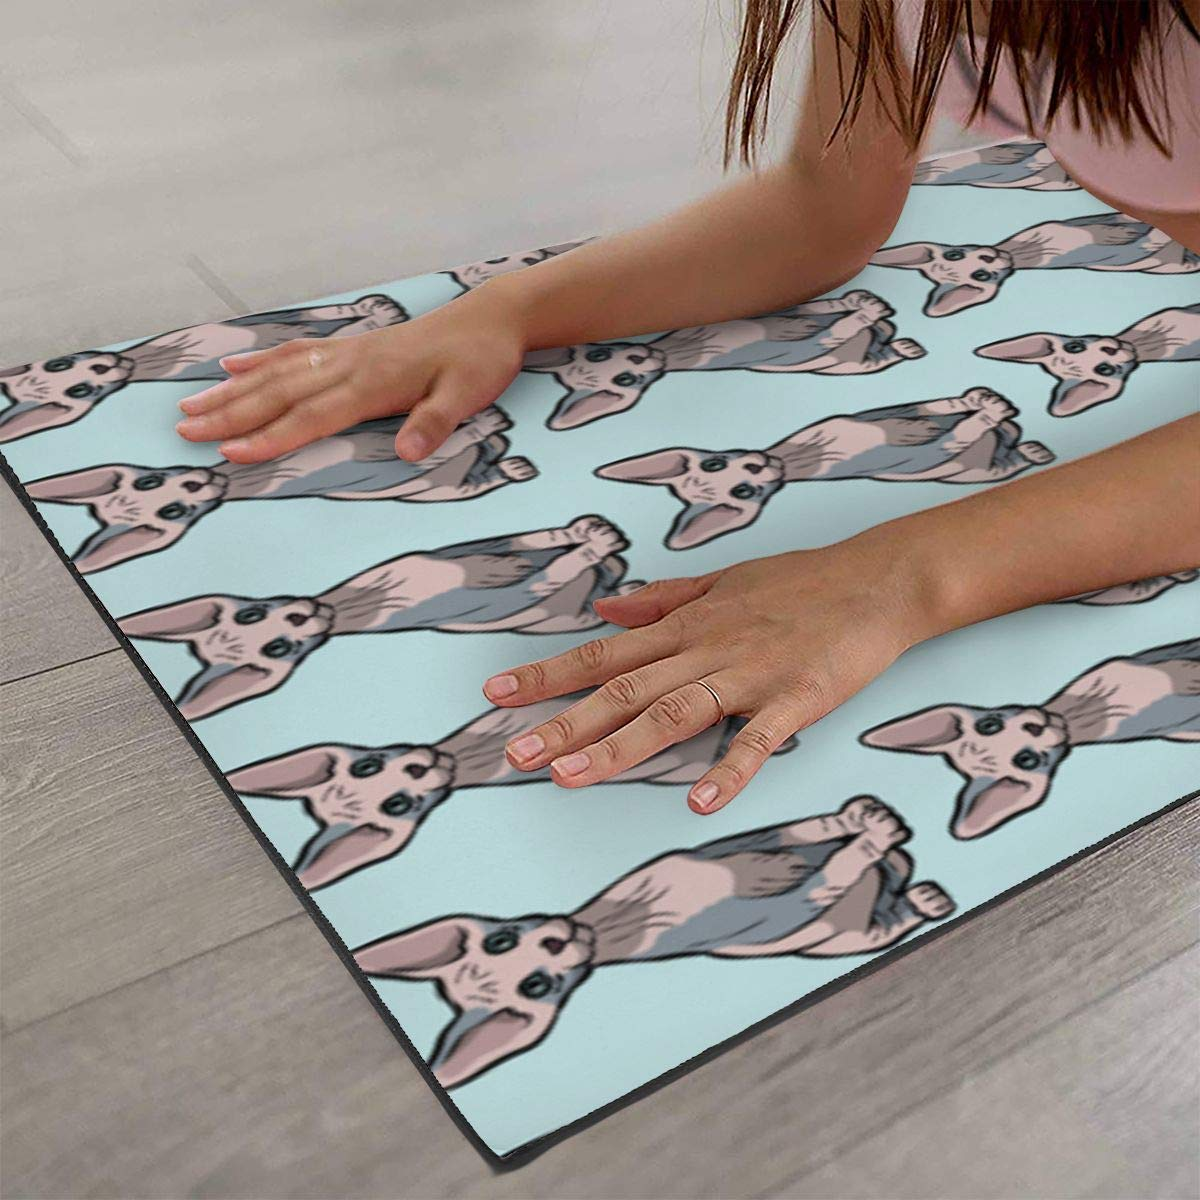 Amazon.com: Sphynx Cat Printed Yoga Mat Prana Yoga Mat ...